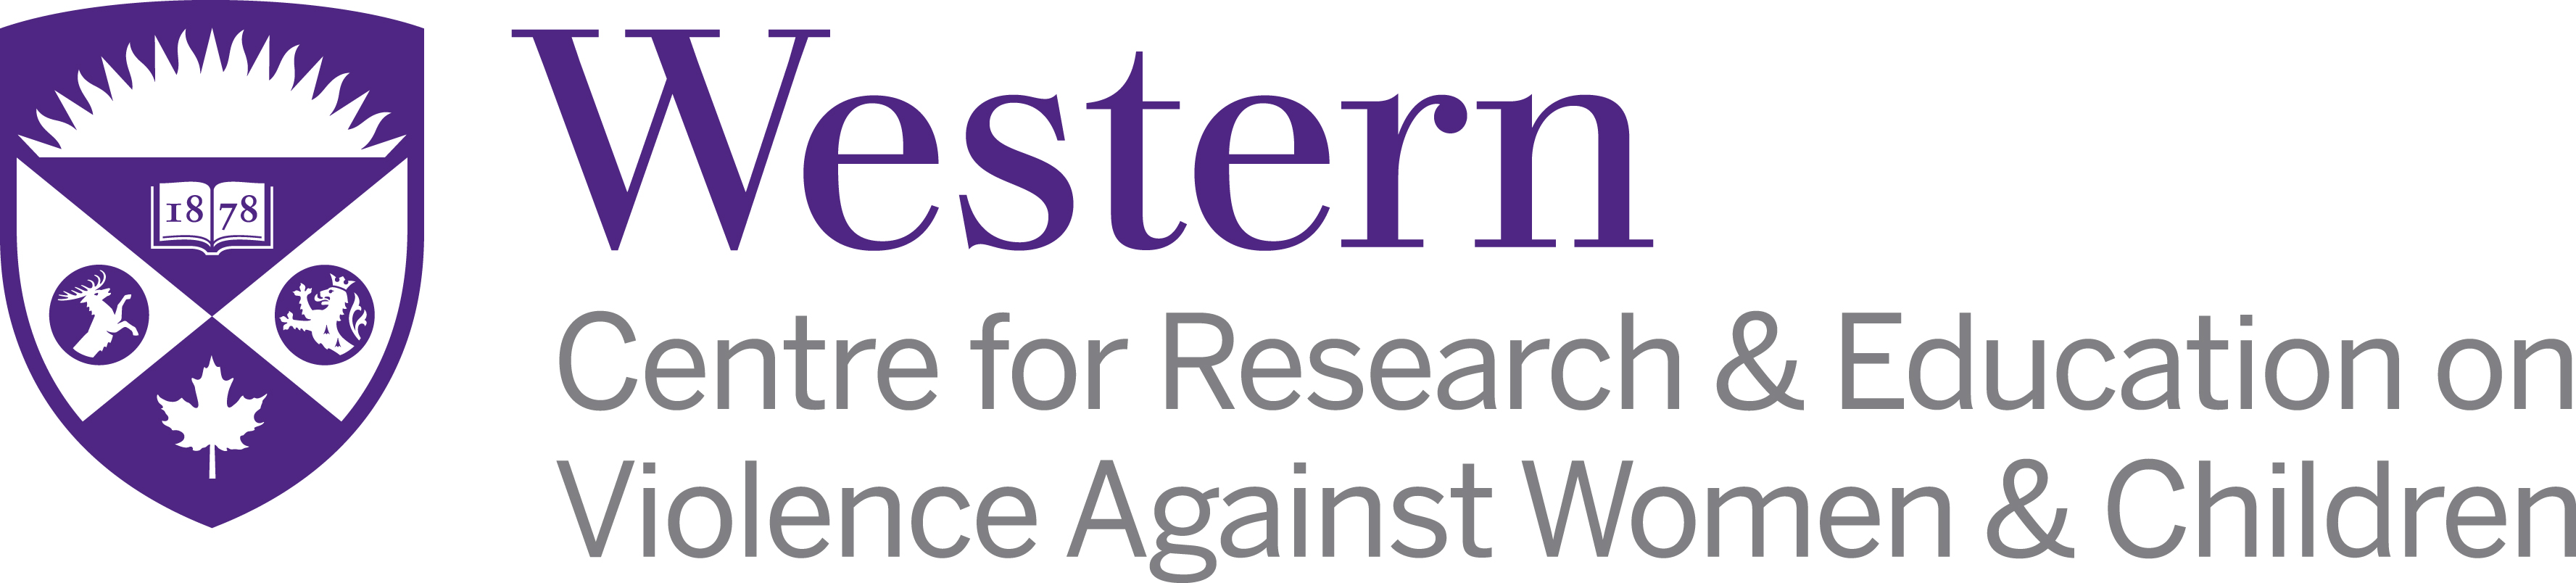 Centre for Research & Education on Violence Against Women & Children Logo